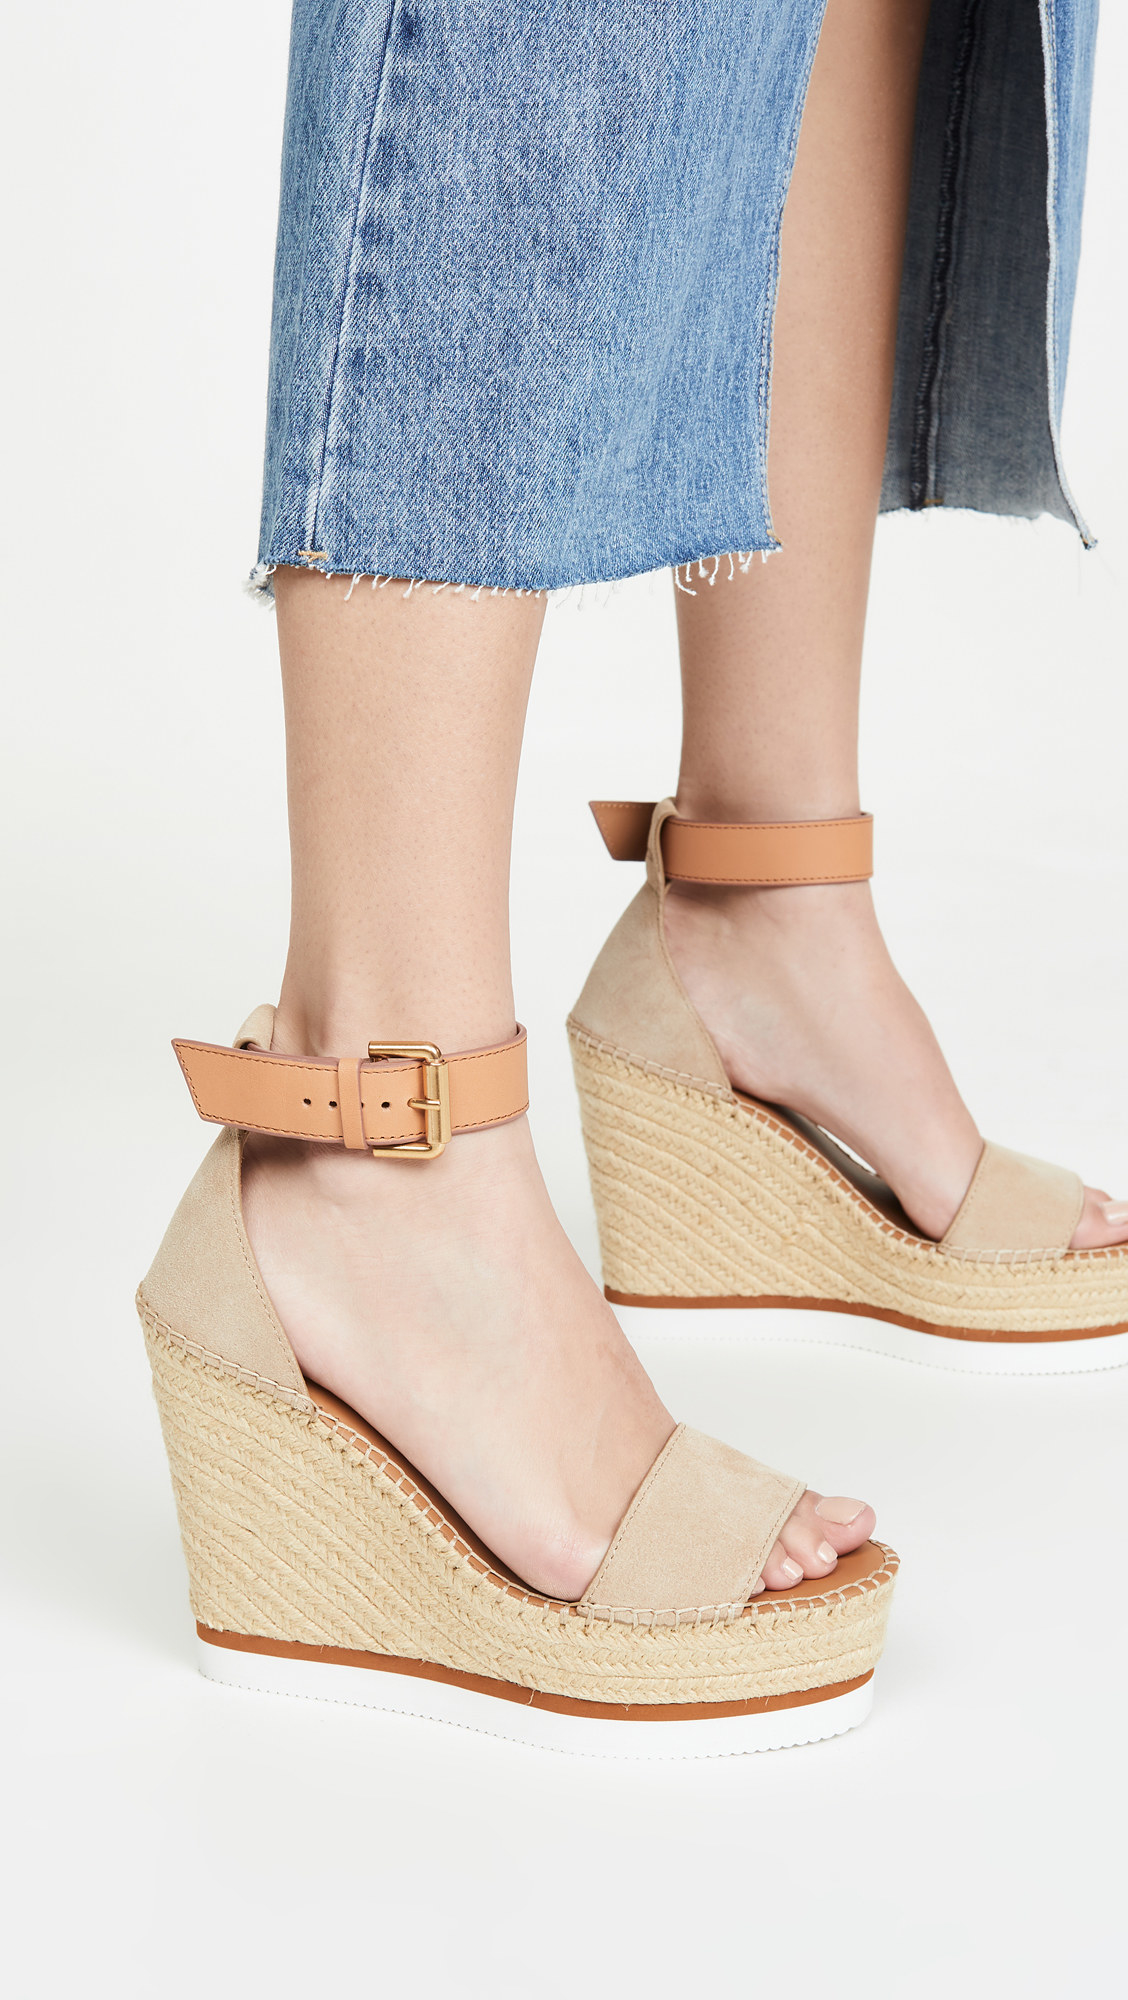 light tan espadrille wedges with a sporty foam sole and a slightly darker tan buckled closure at the top